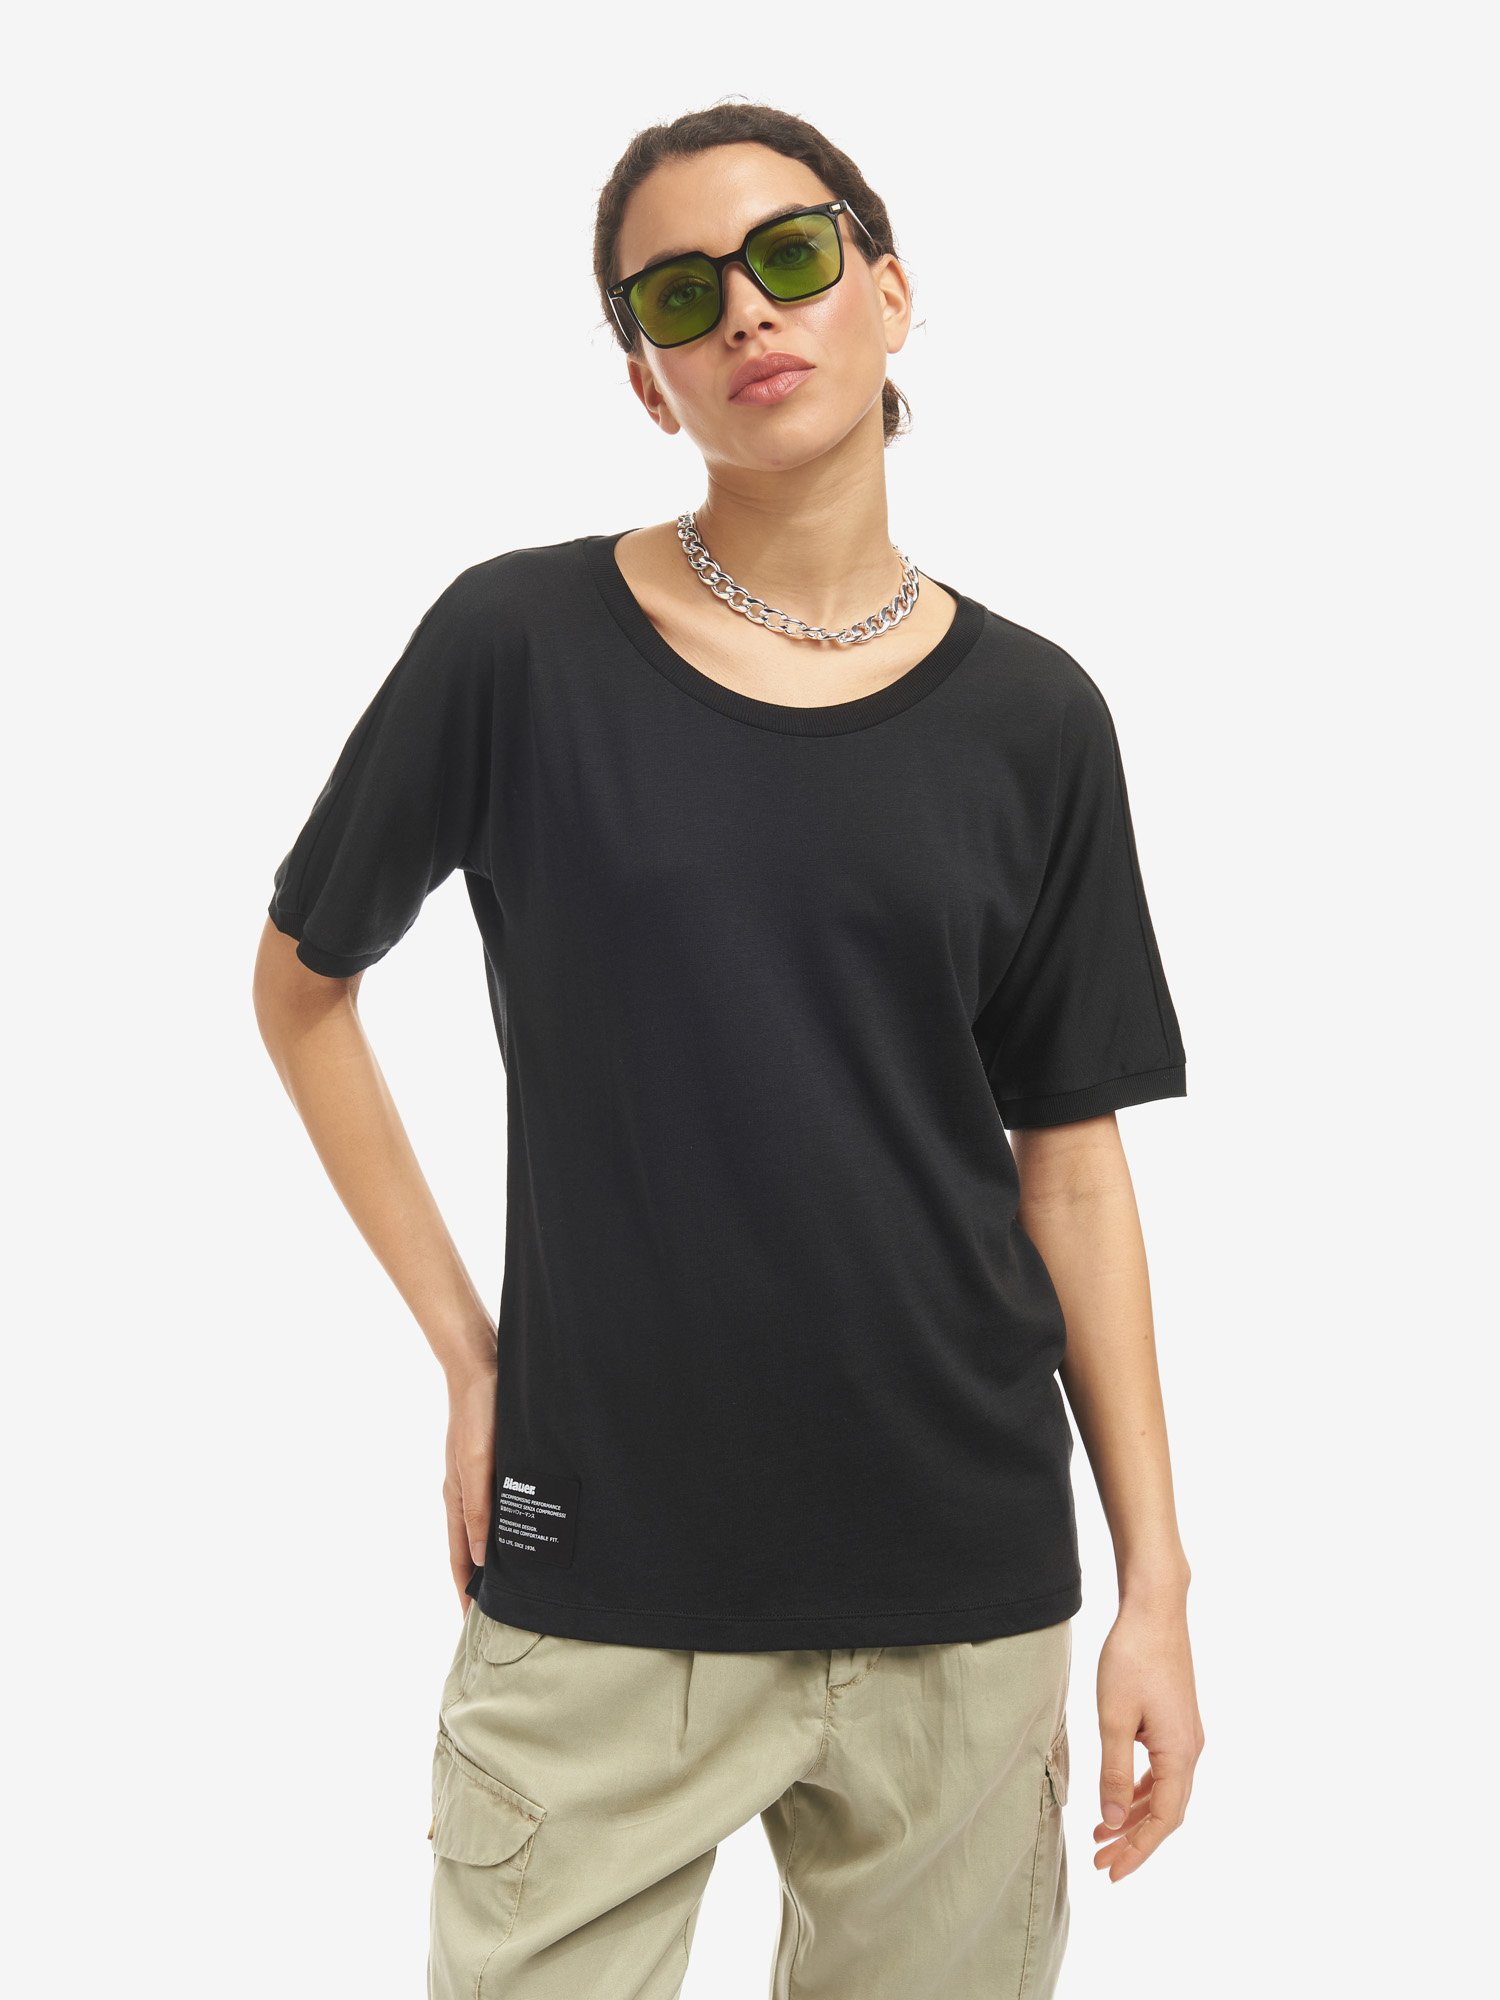 COTTON AND LYOCELL T-SHIRT - Blauer